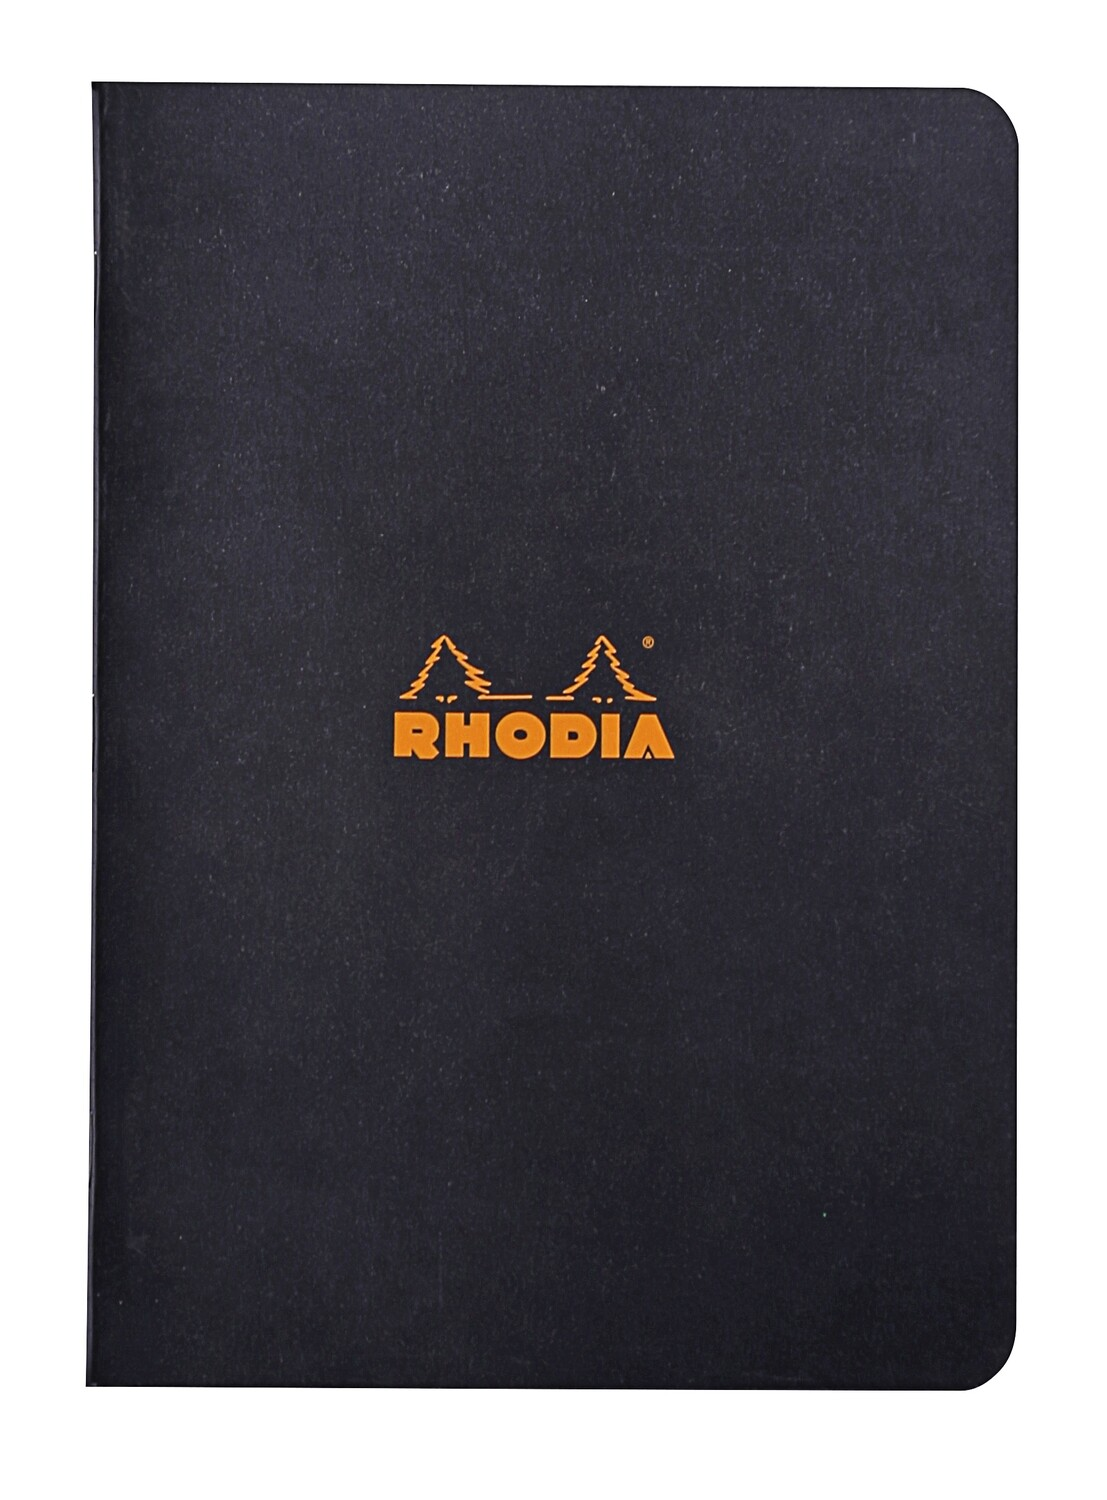 Notepad, Rhodia, Lined Black, A5, Staplebound